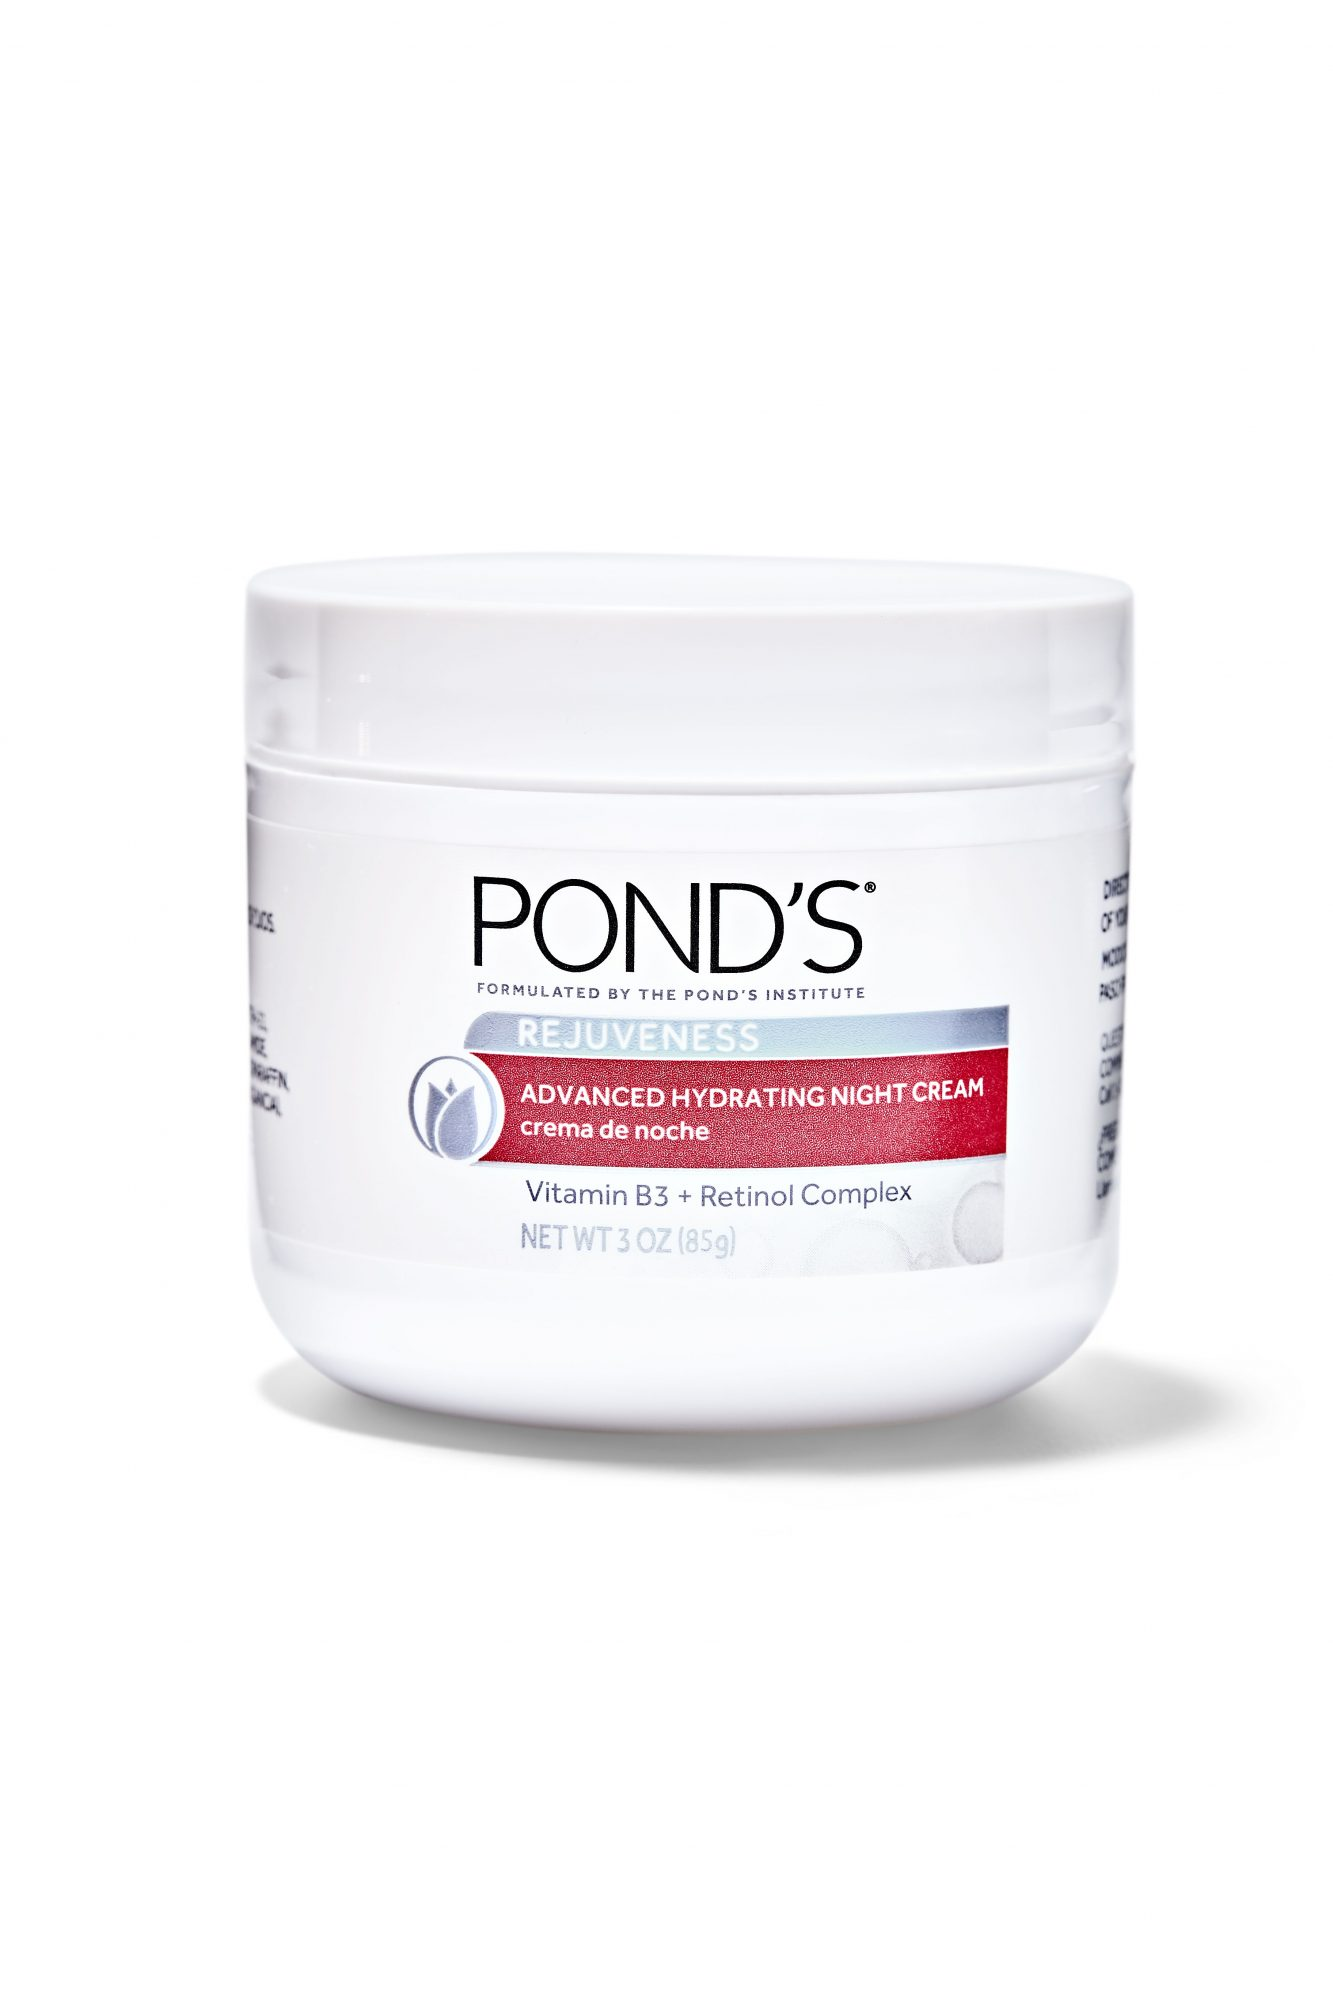 Pond's Advanced Hydrating Night Cream